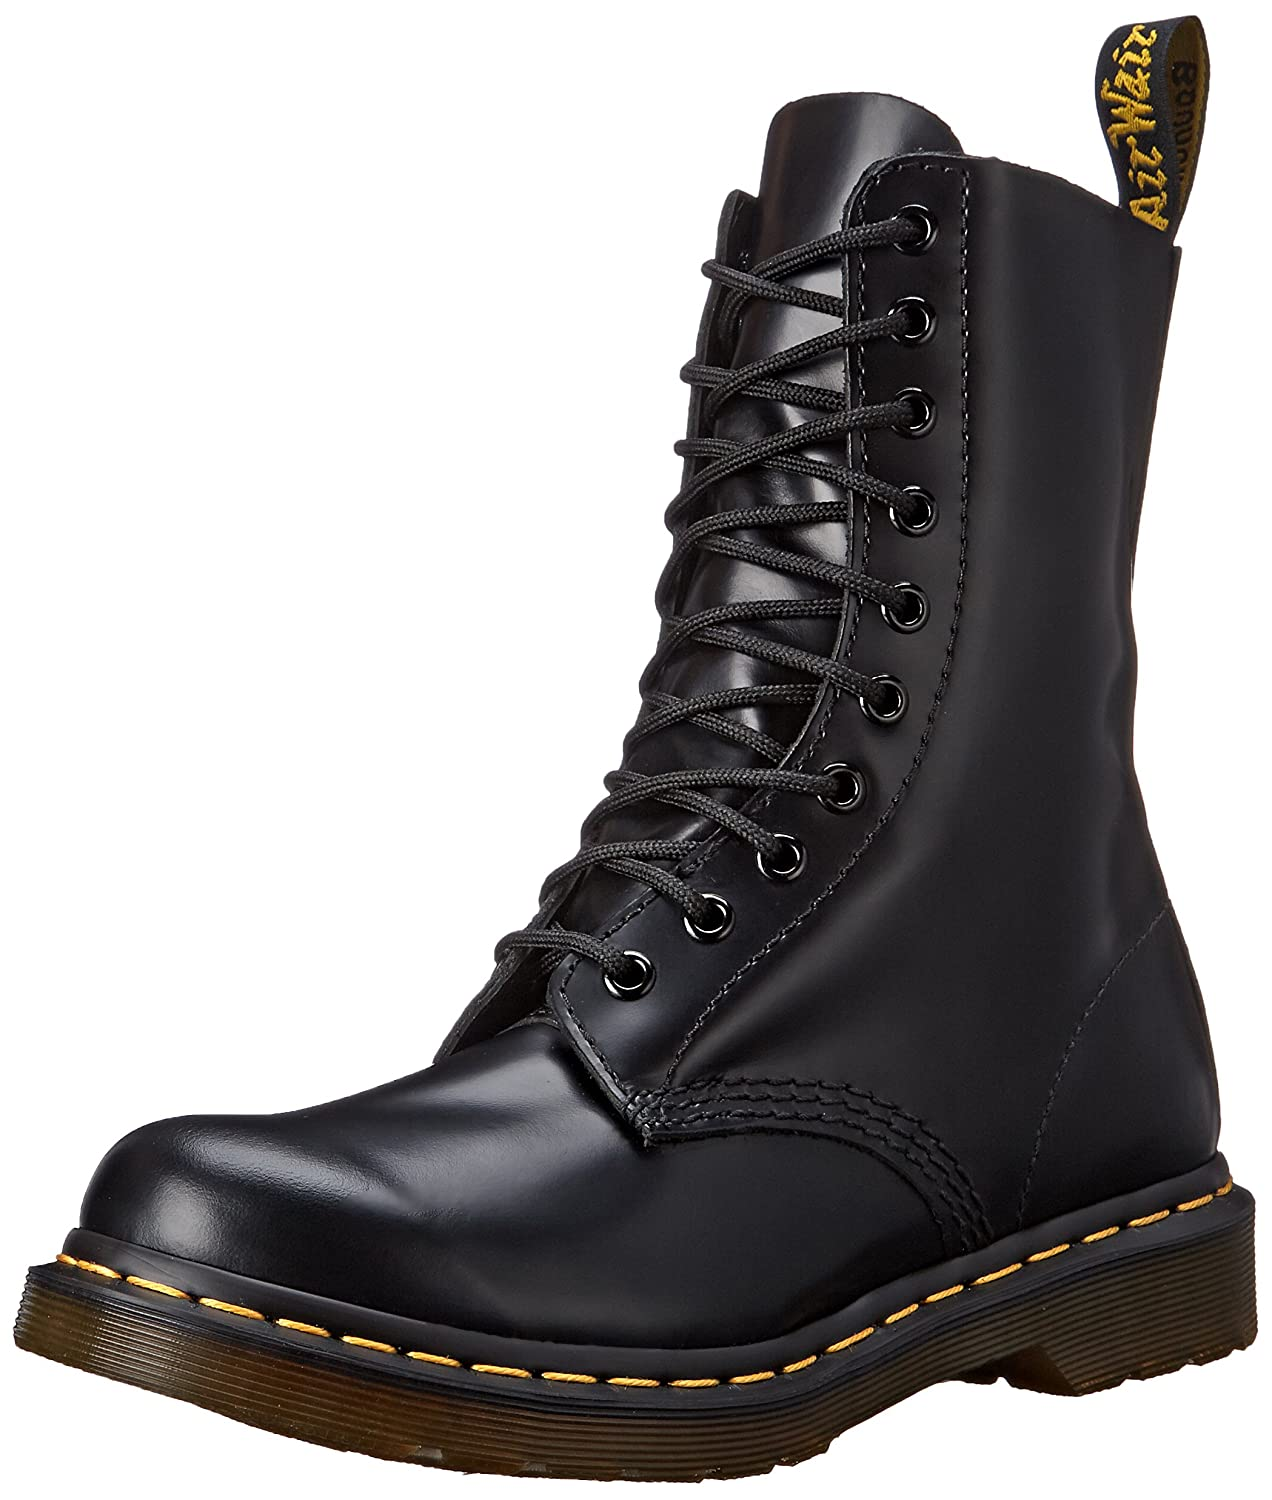 Dr. Martens Women's 1490 W 10 Eye Boot B000NYDUXC 8 UK/10 M US|Black Smooth